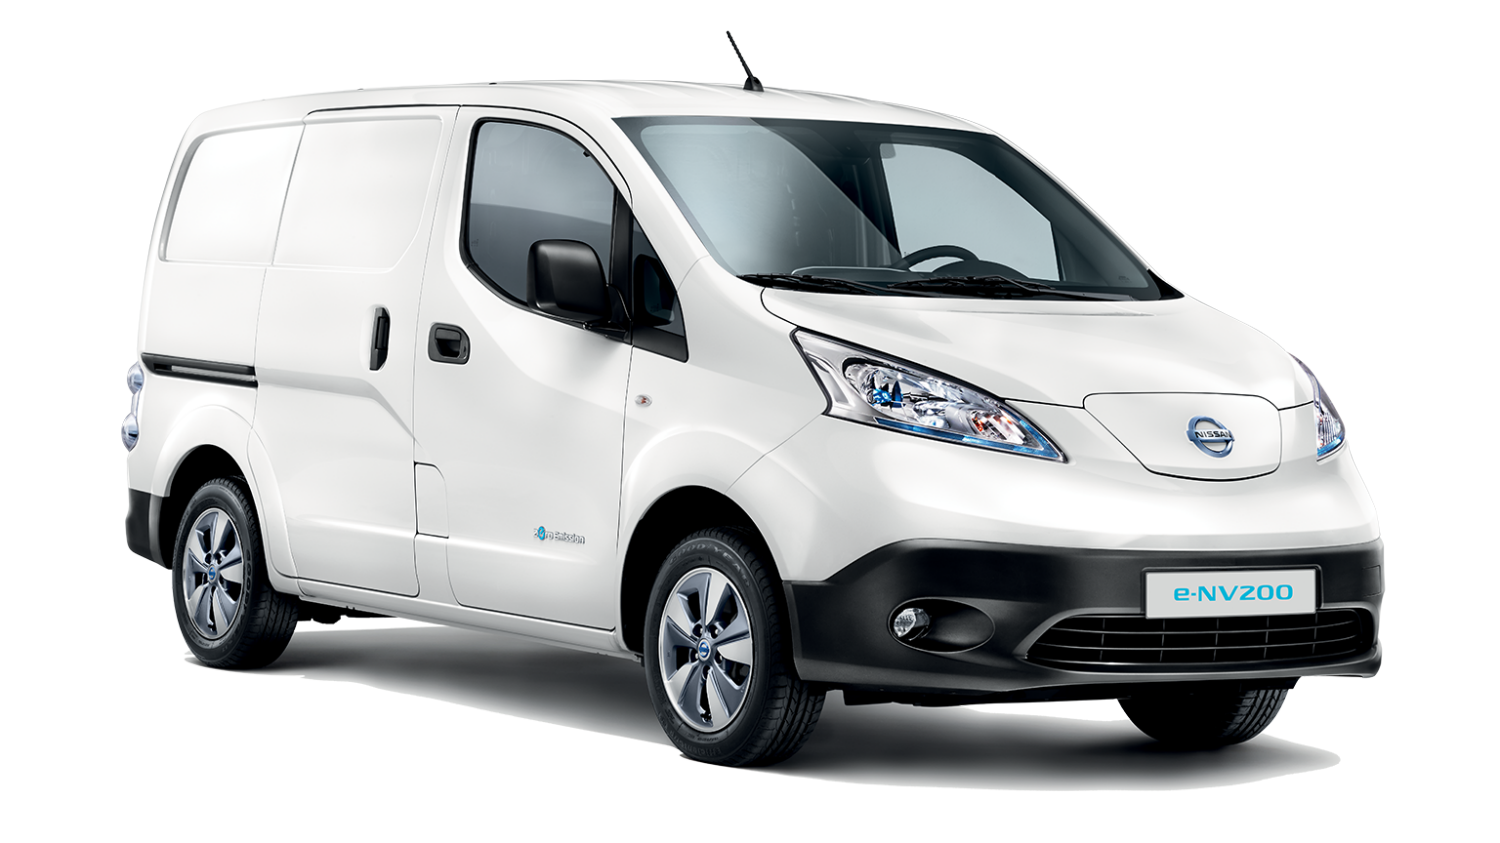 prix et caract ristiques nissan e nv200 fourgon nissan. Black Bedroom Furniture Sets. Home Design Ideas